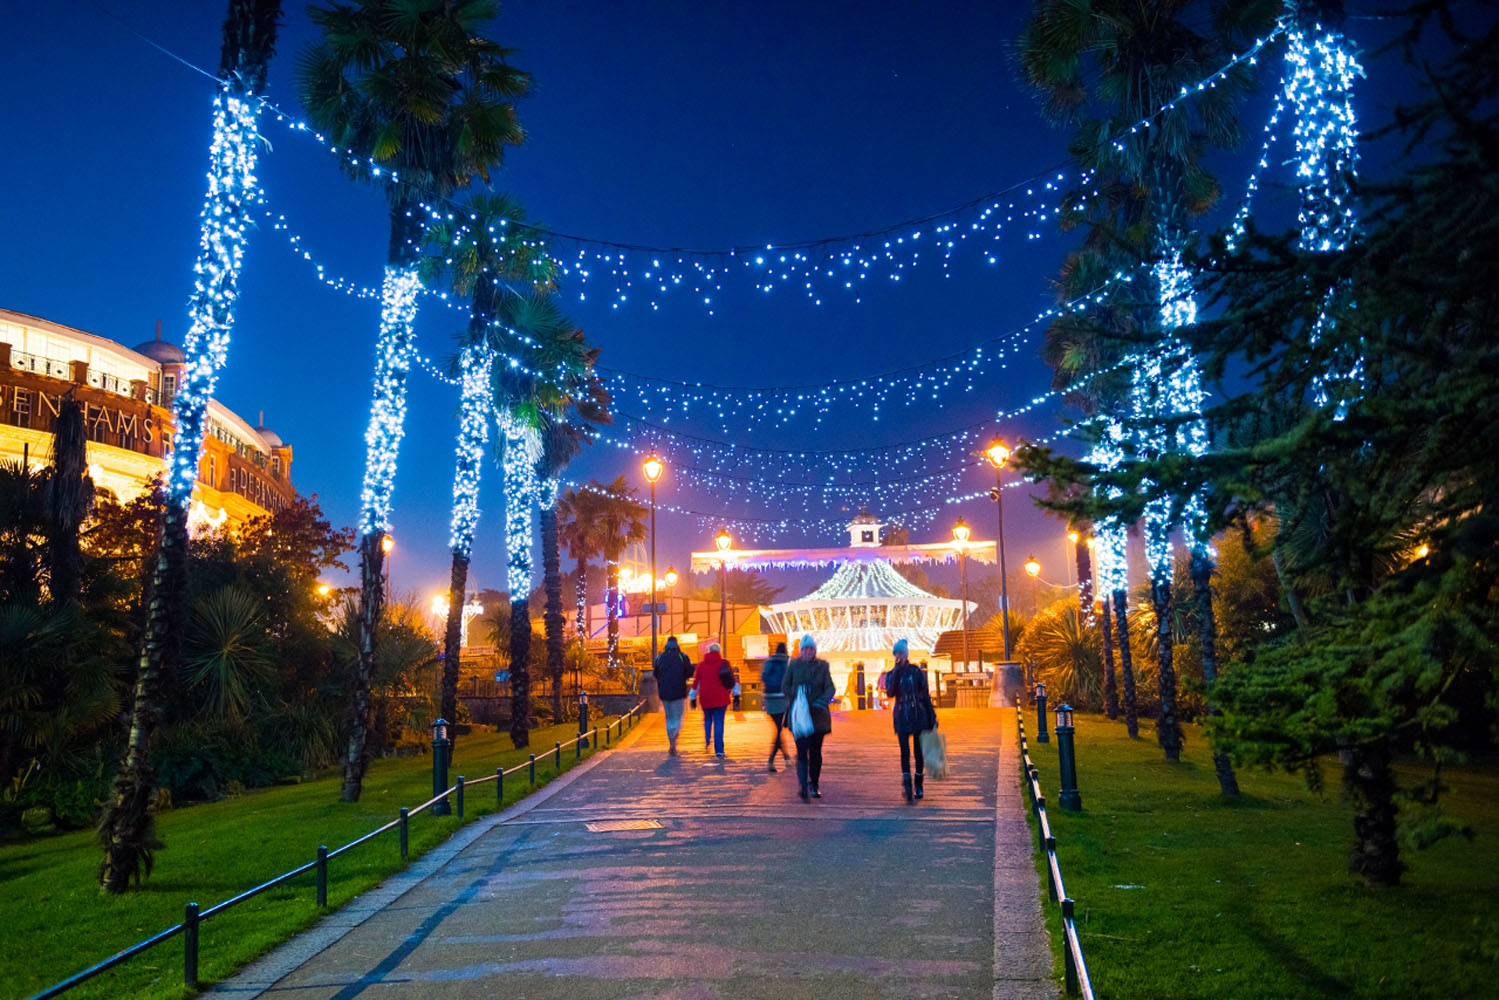 Christmas decorations illuminated in Bournemouth's Lower Gardens.